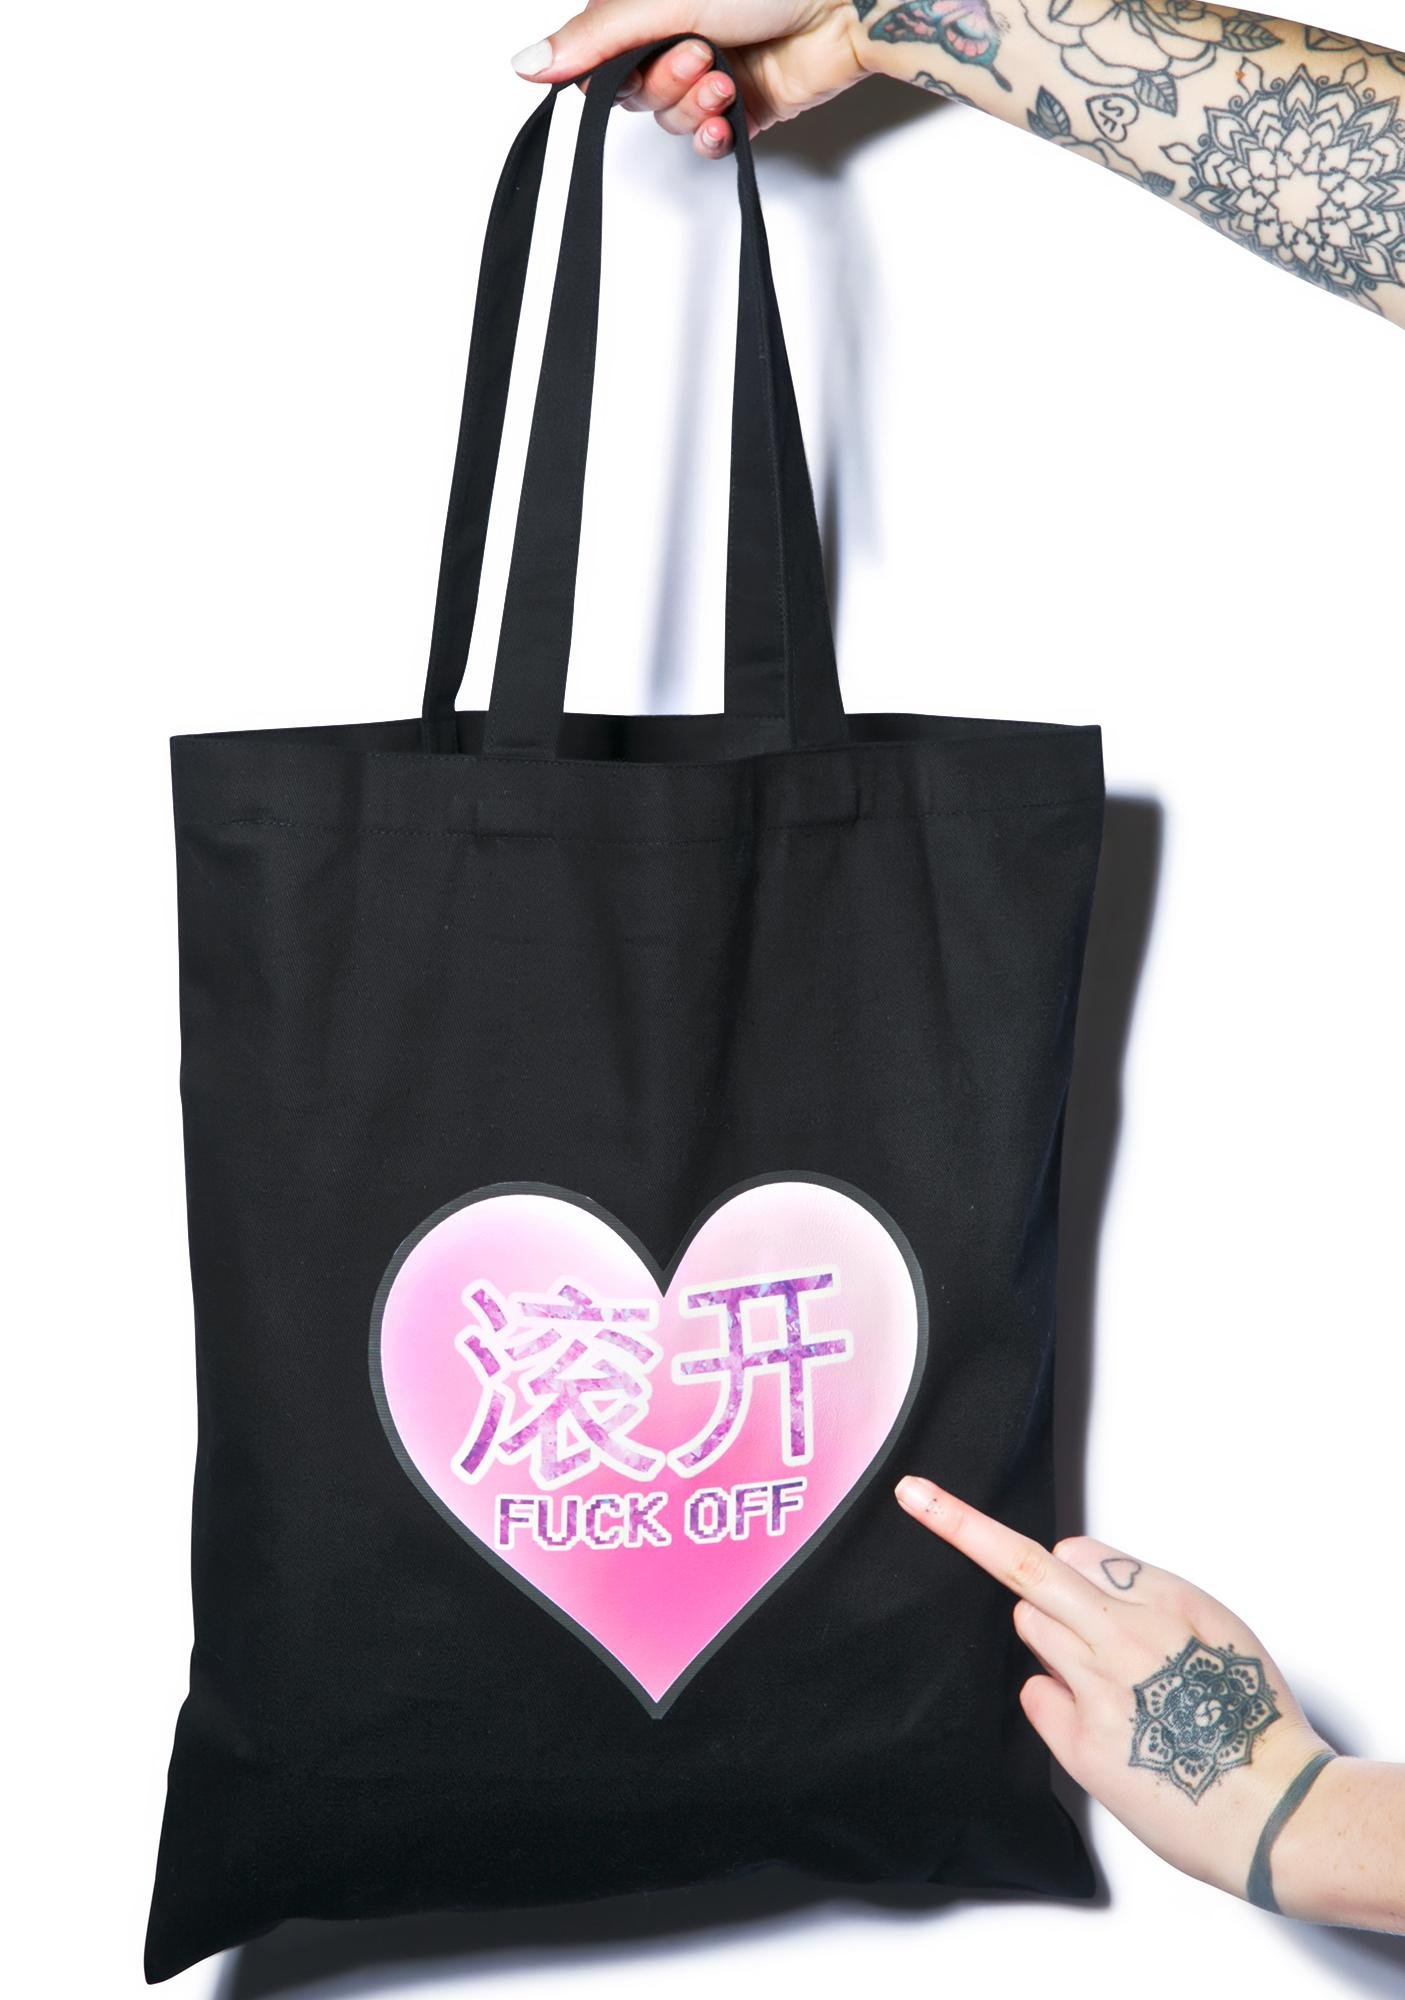 Fuck Off Tote Bag